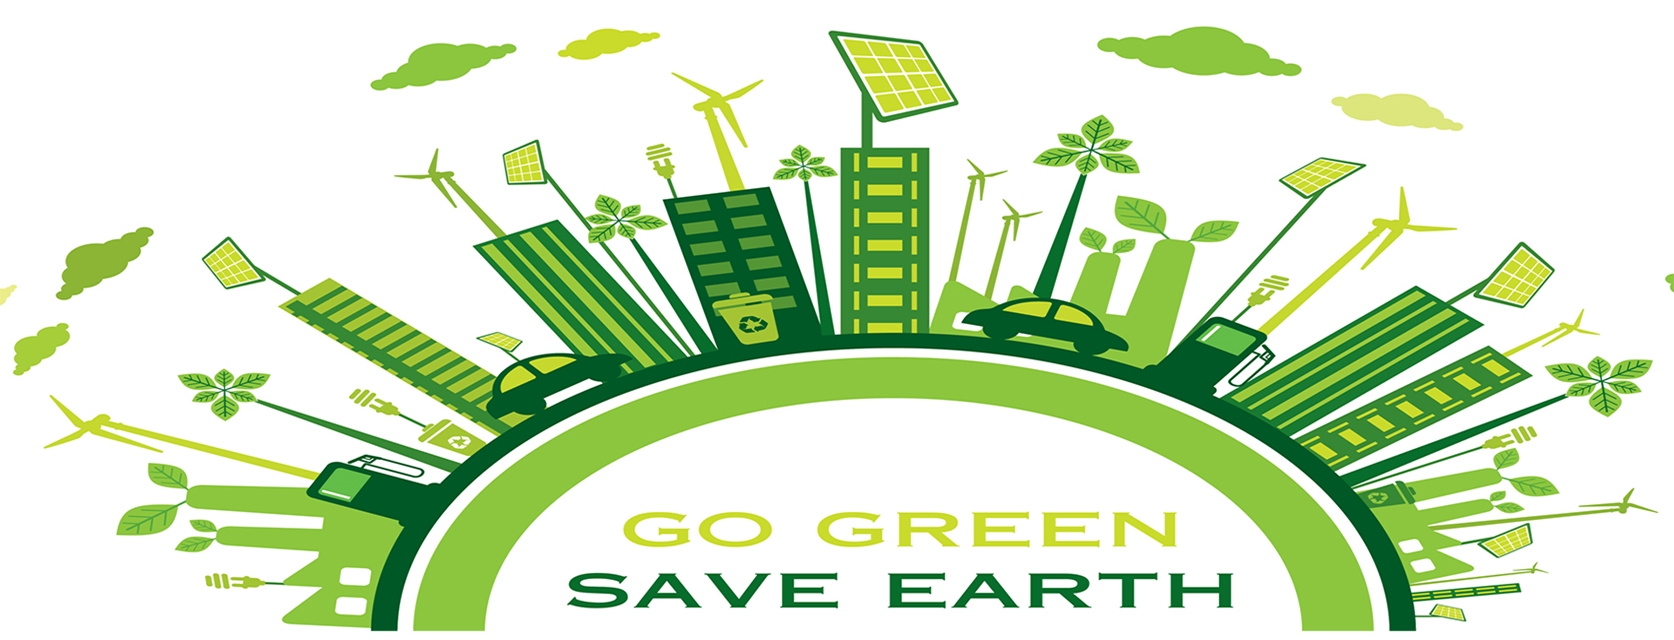 Go green and Save Earth